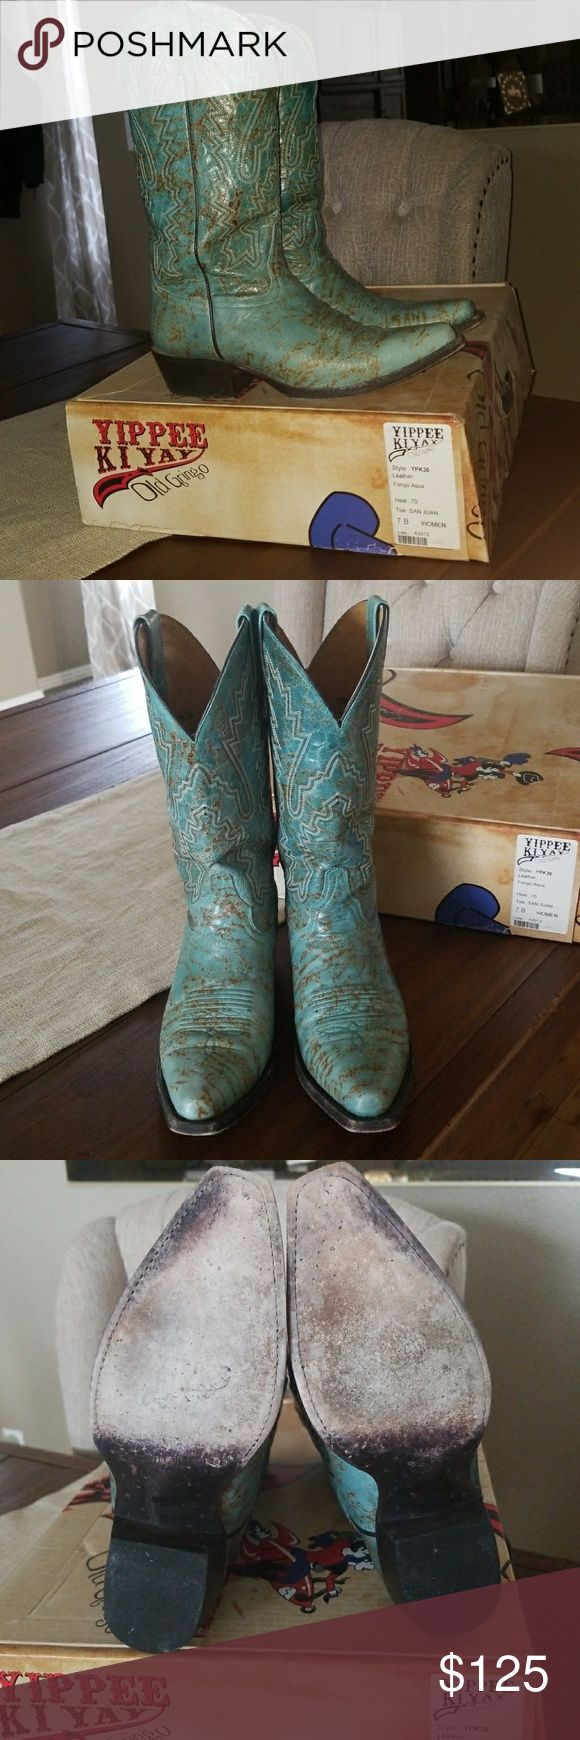 Old Gringo Boots Fango Aqua from the Old Gringo Yippee Ki Yay l line. I love these boots and hoped I could wear them, but they are a little too small for me. Old Gringo Shoes Heeled Boots